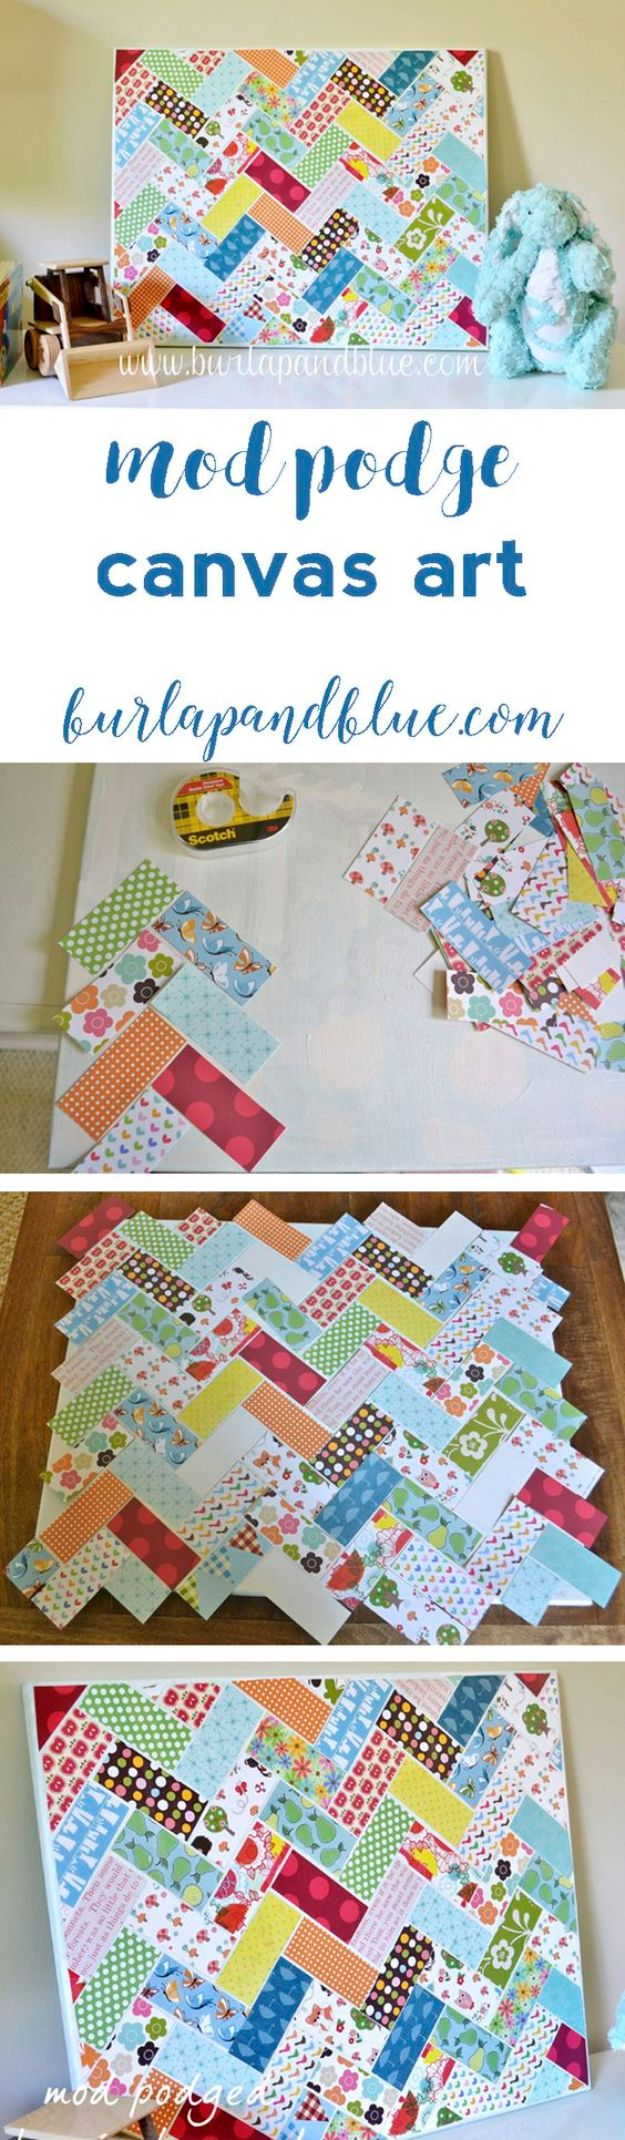 33 Projects Ideas To Make From Quilting Scraps